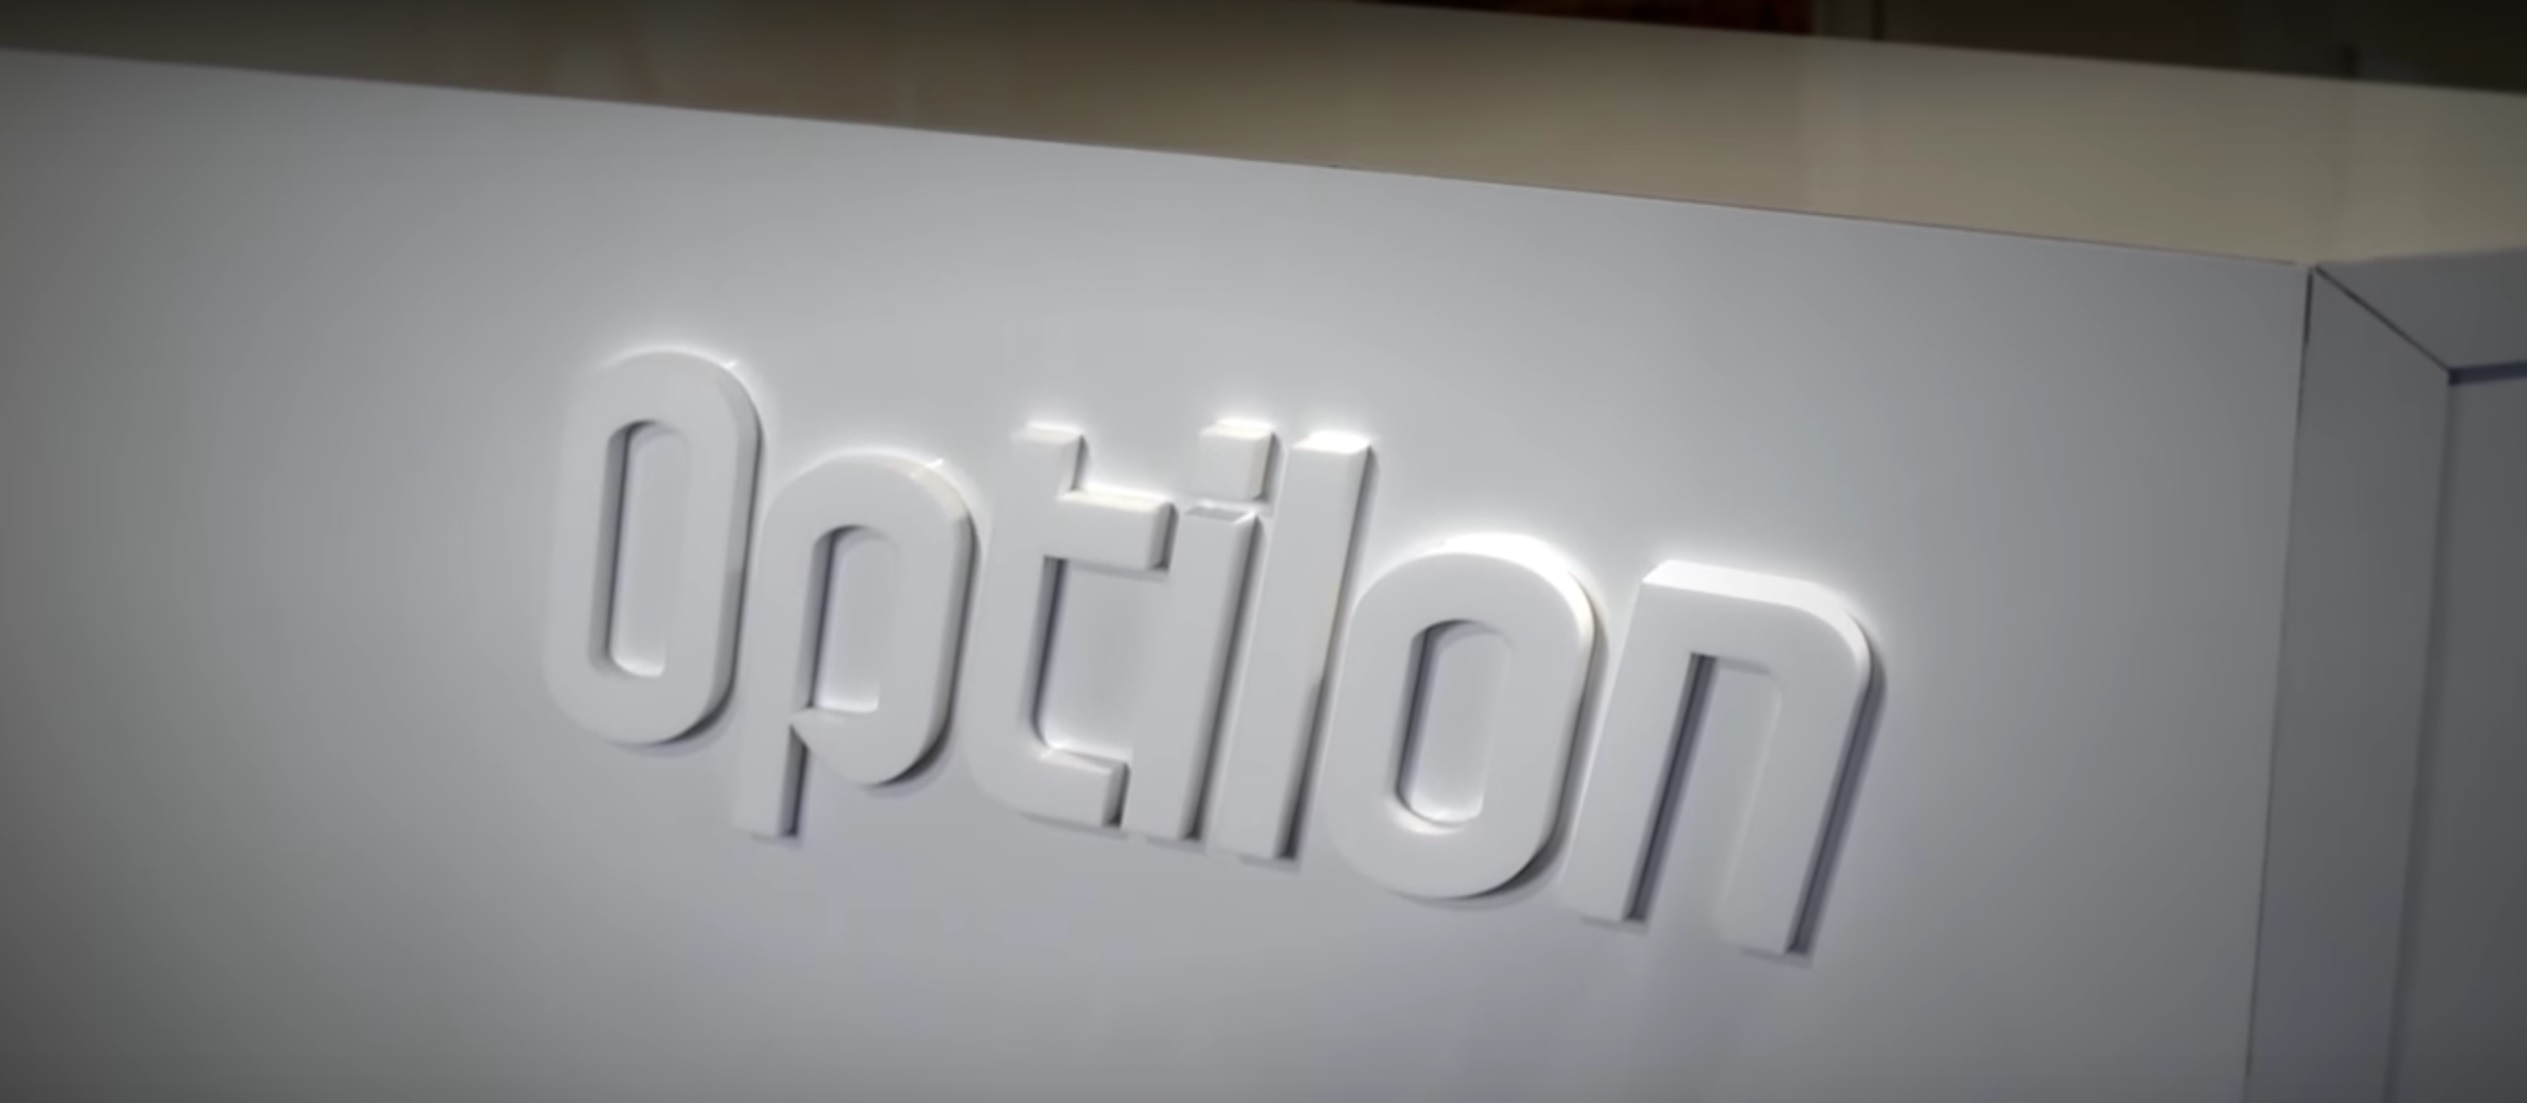 Optilon optimizing supply chains